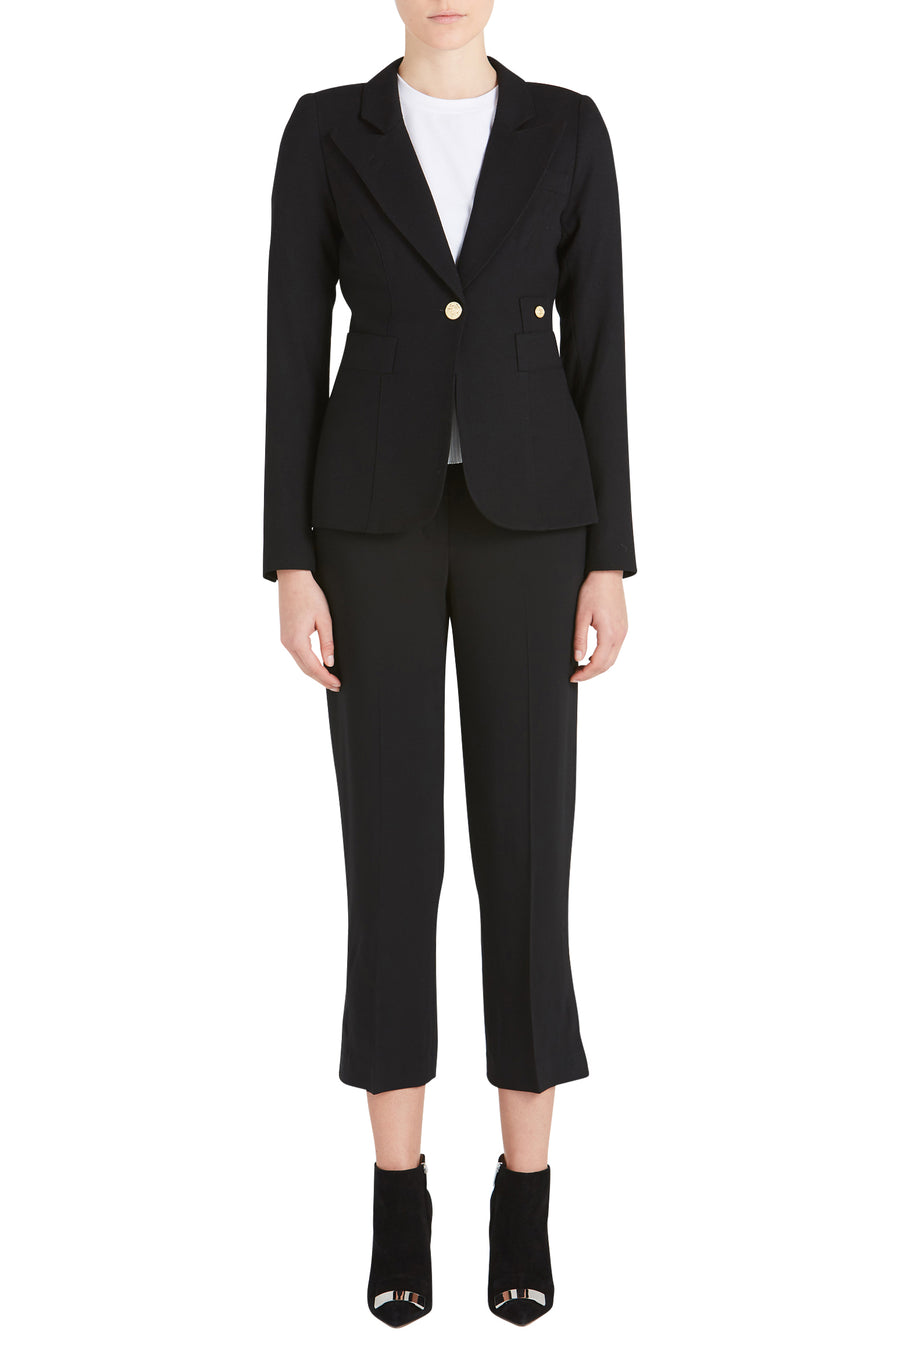 Smythe Classic Duchess Blazer from The New Trend